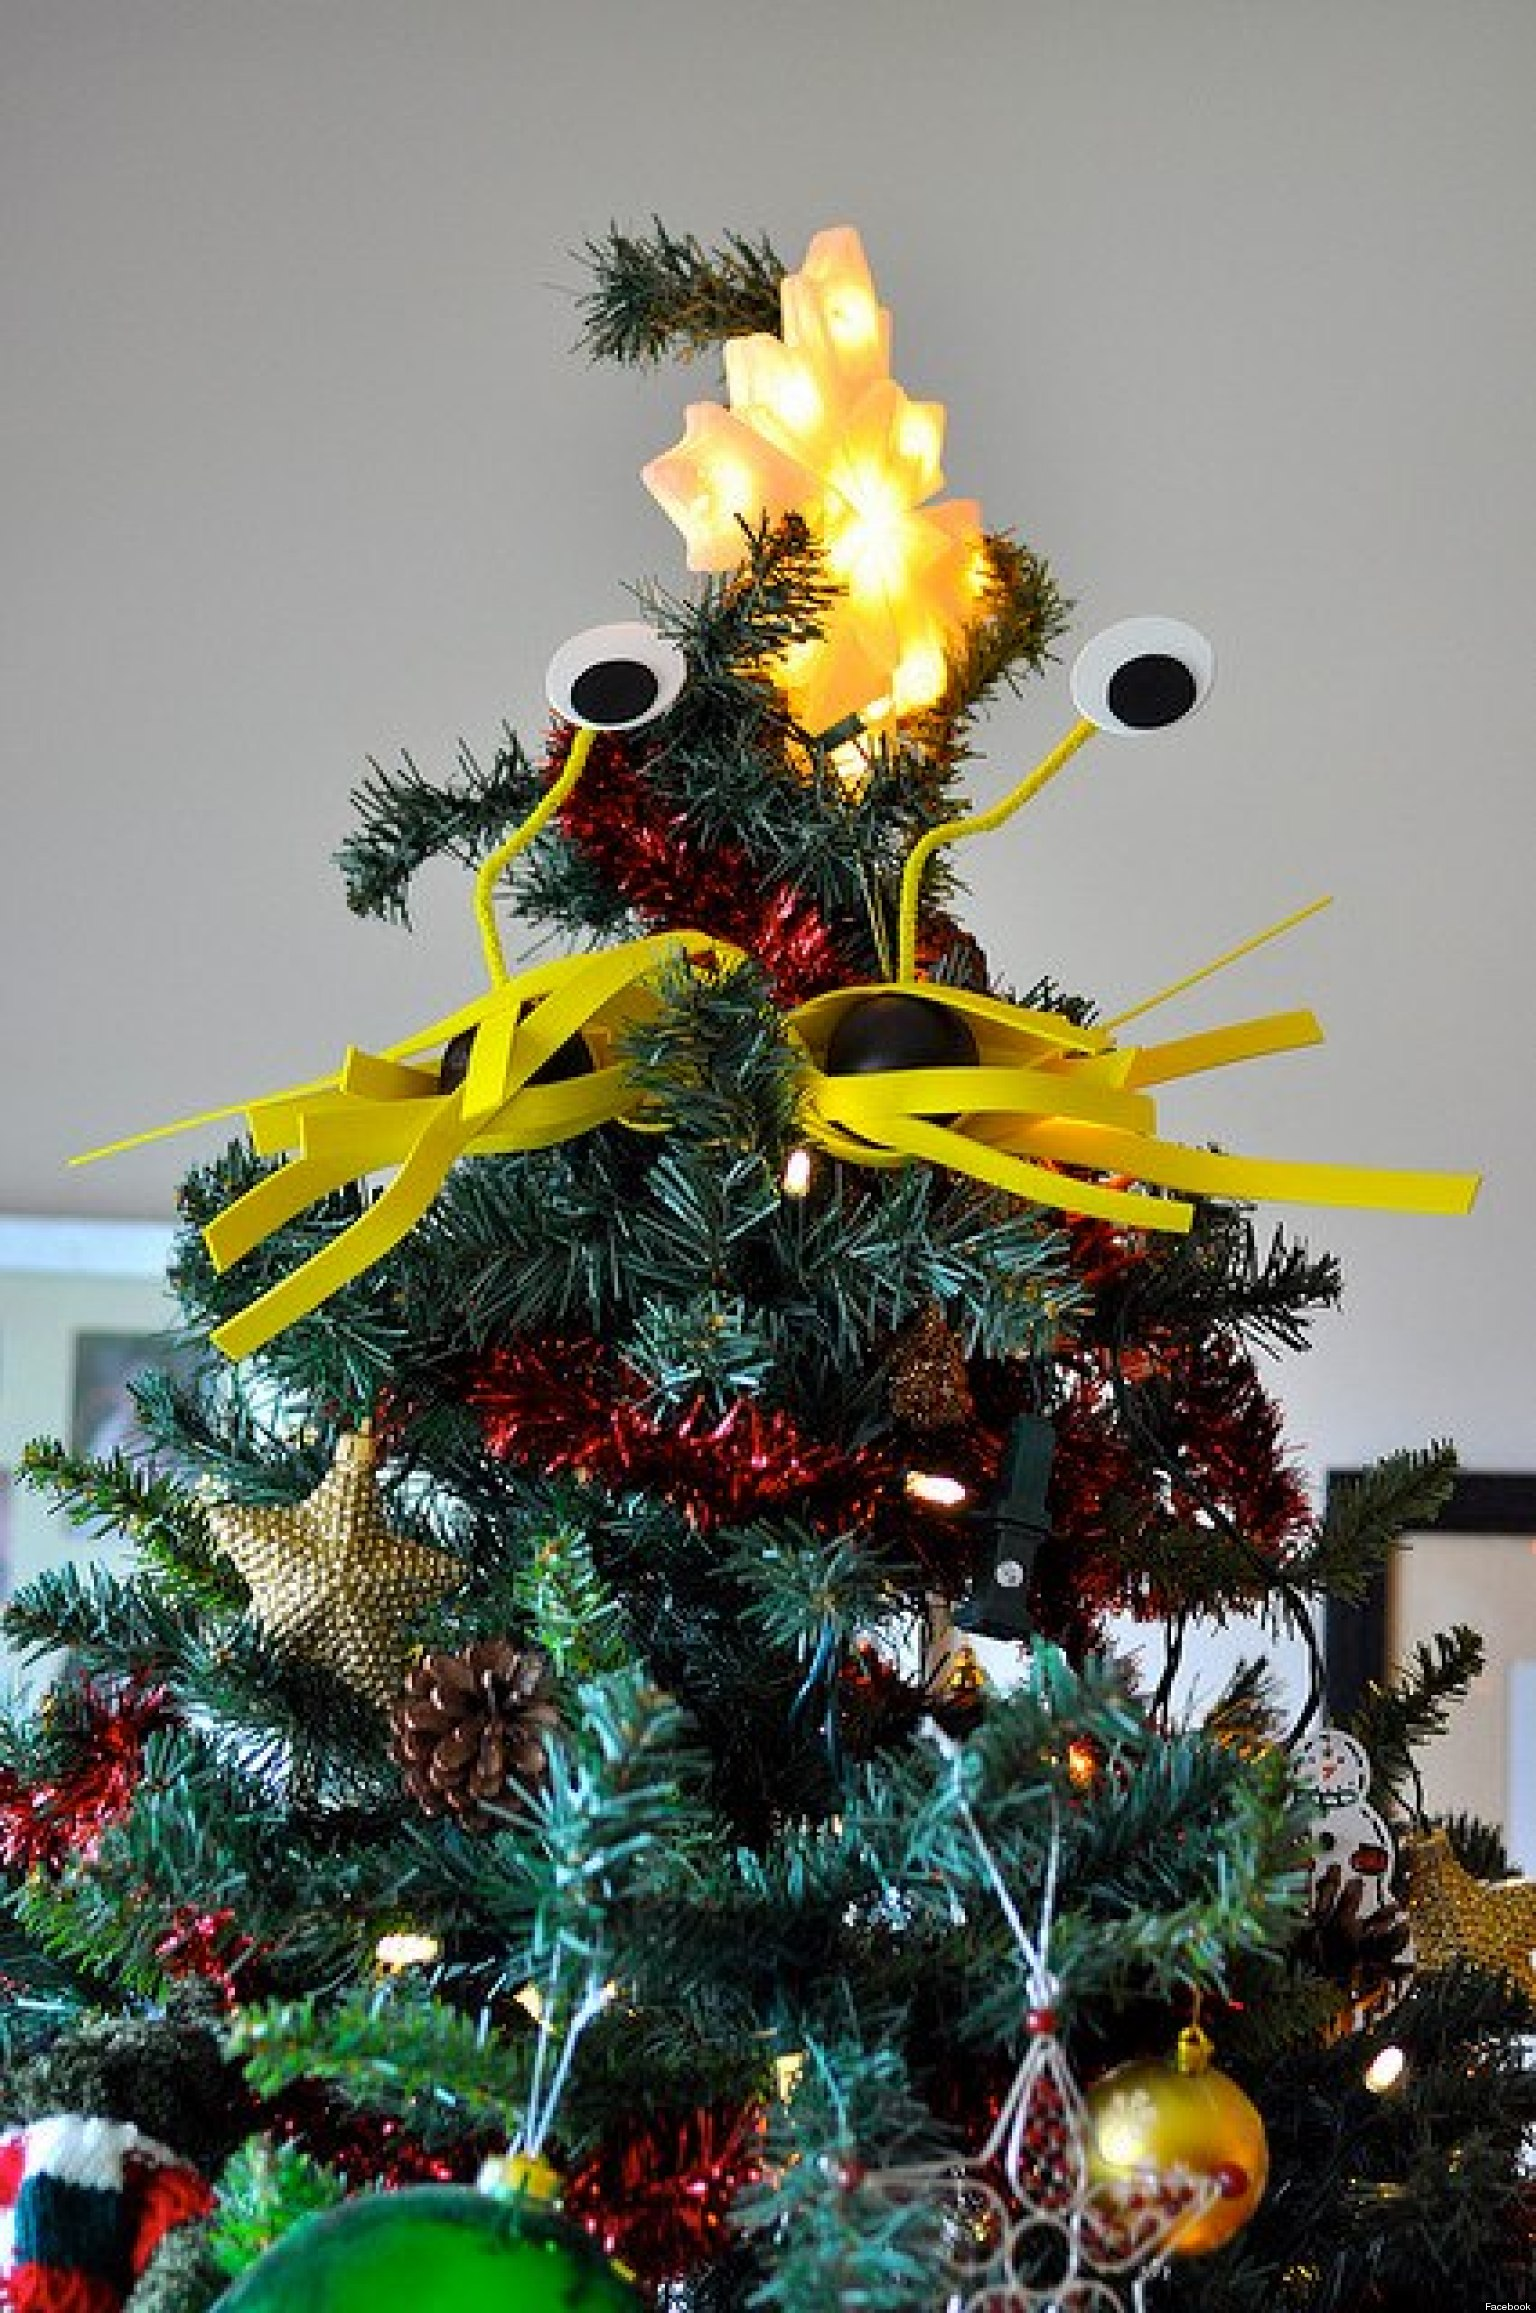 Pastafarians Demand Place In Courthouse Holiday Display, Want To ...